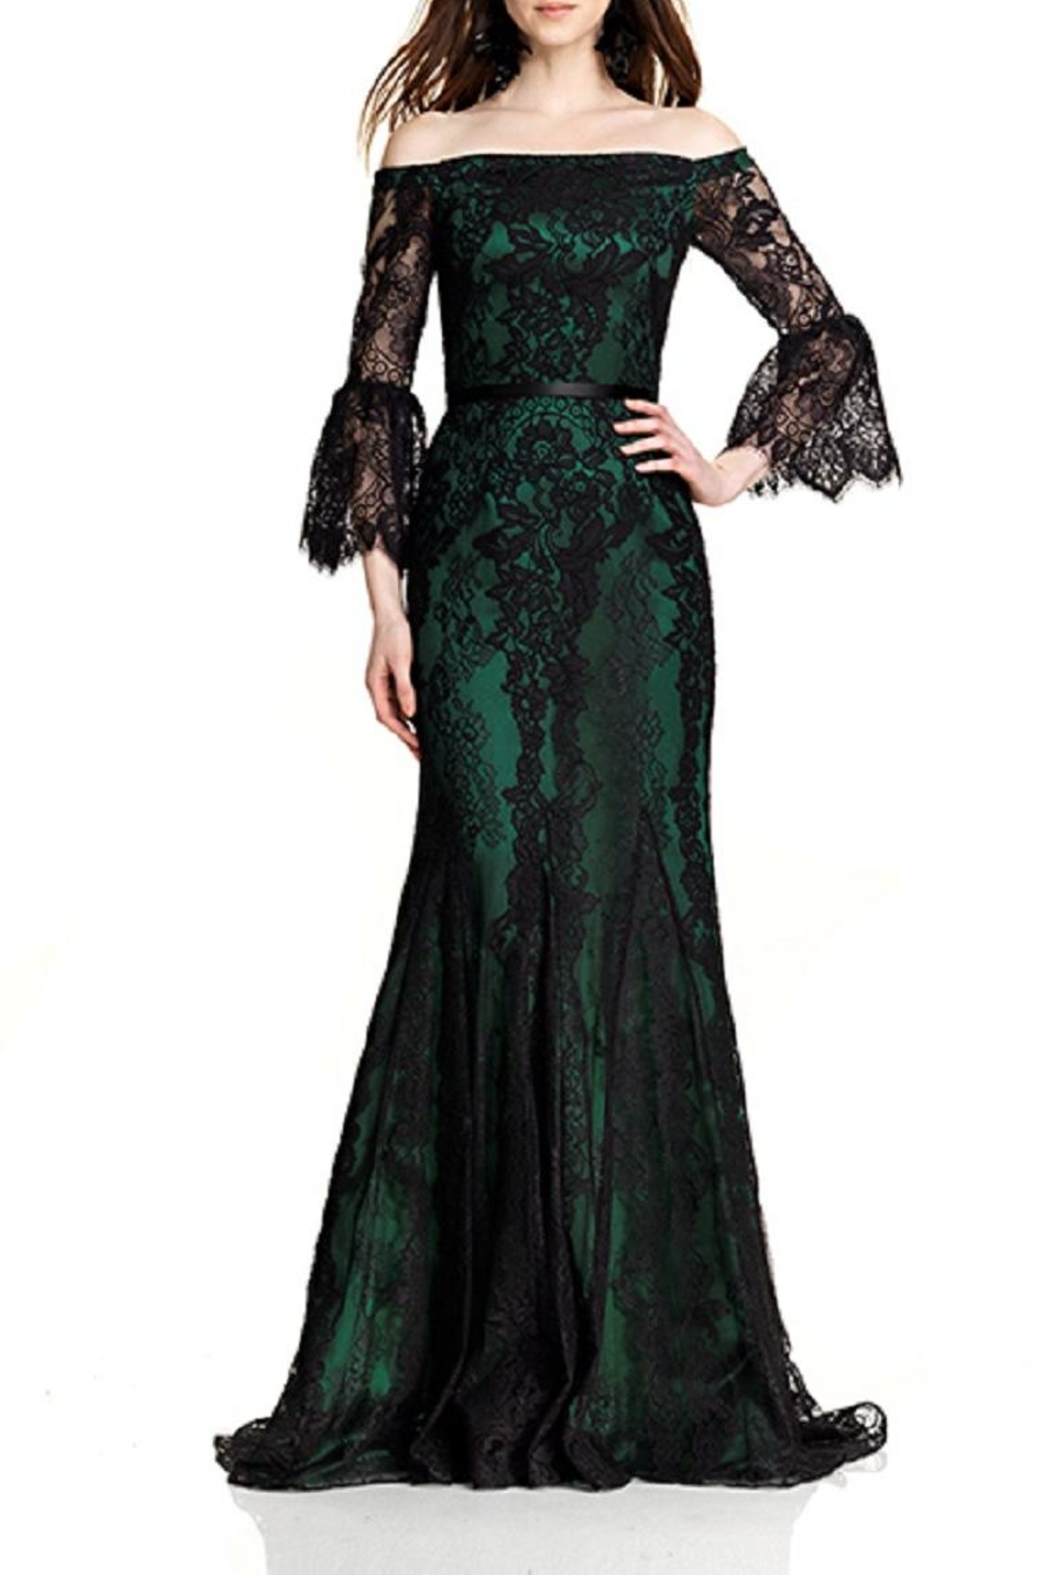 Theia Lace Gown from New Jersey by District 5 Boutique — Shoptiques